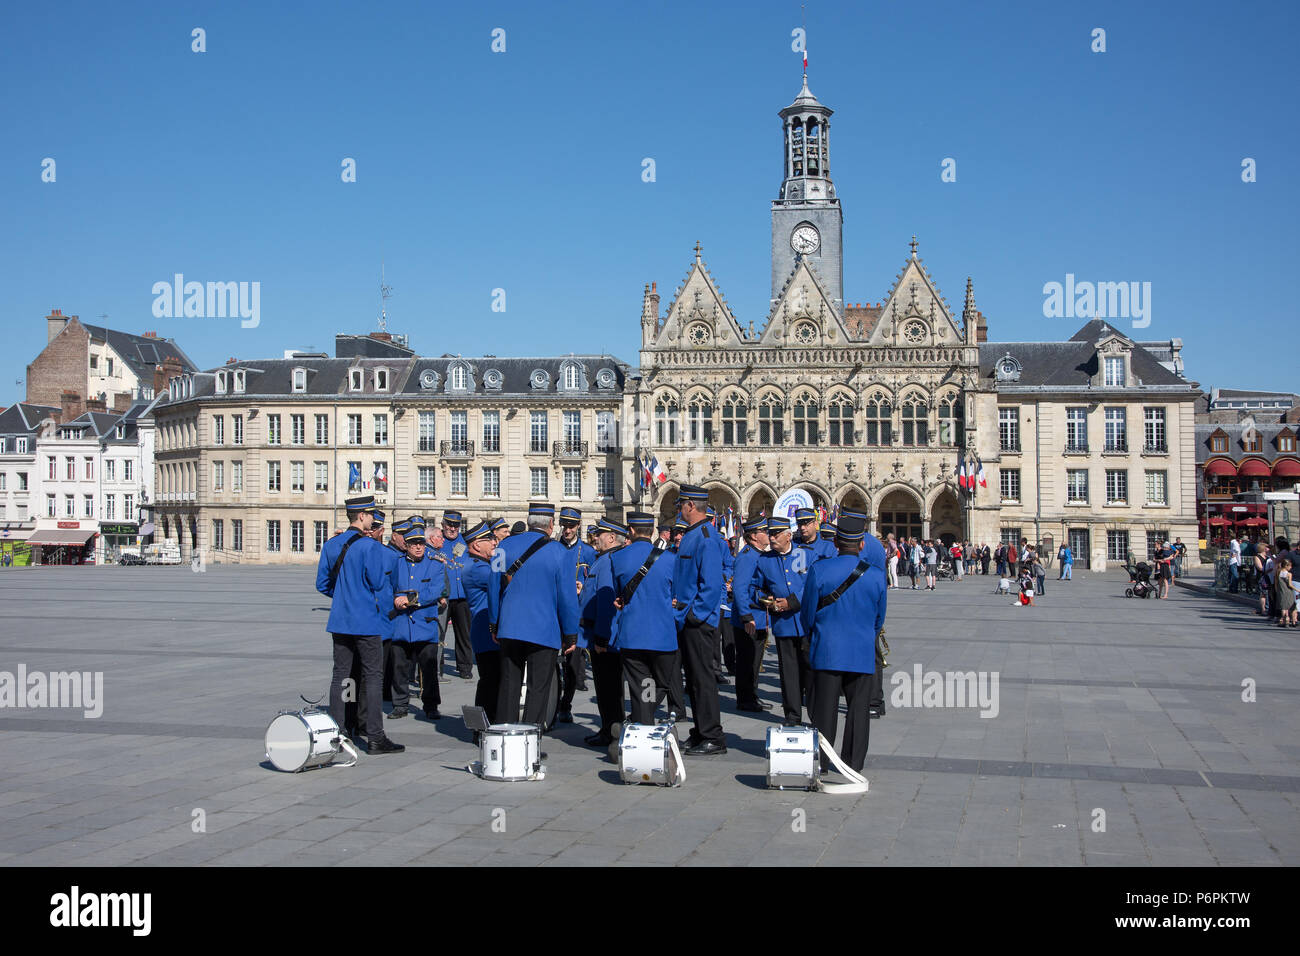 Band members assembled in Place de l' Hotel de Ville St Quentn Aisne France for parade on Victory in Europe day on 8th May 2018 Stock Photo